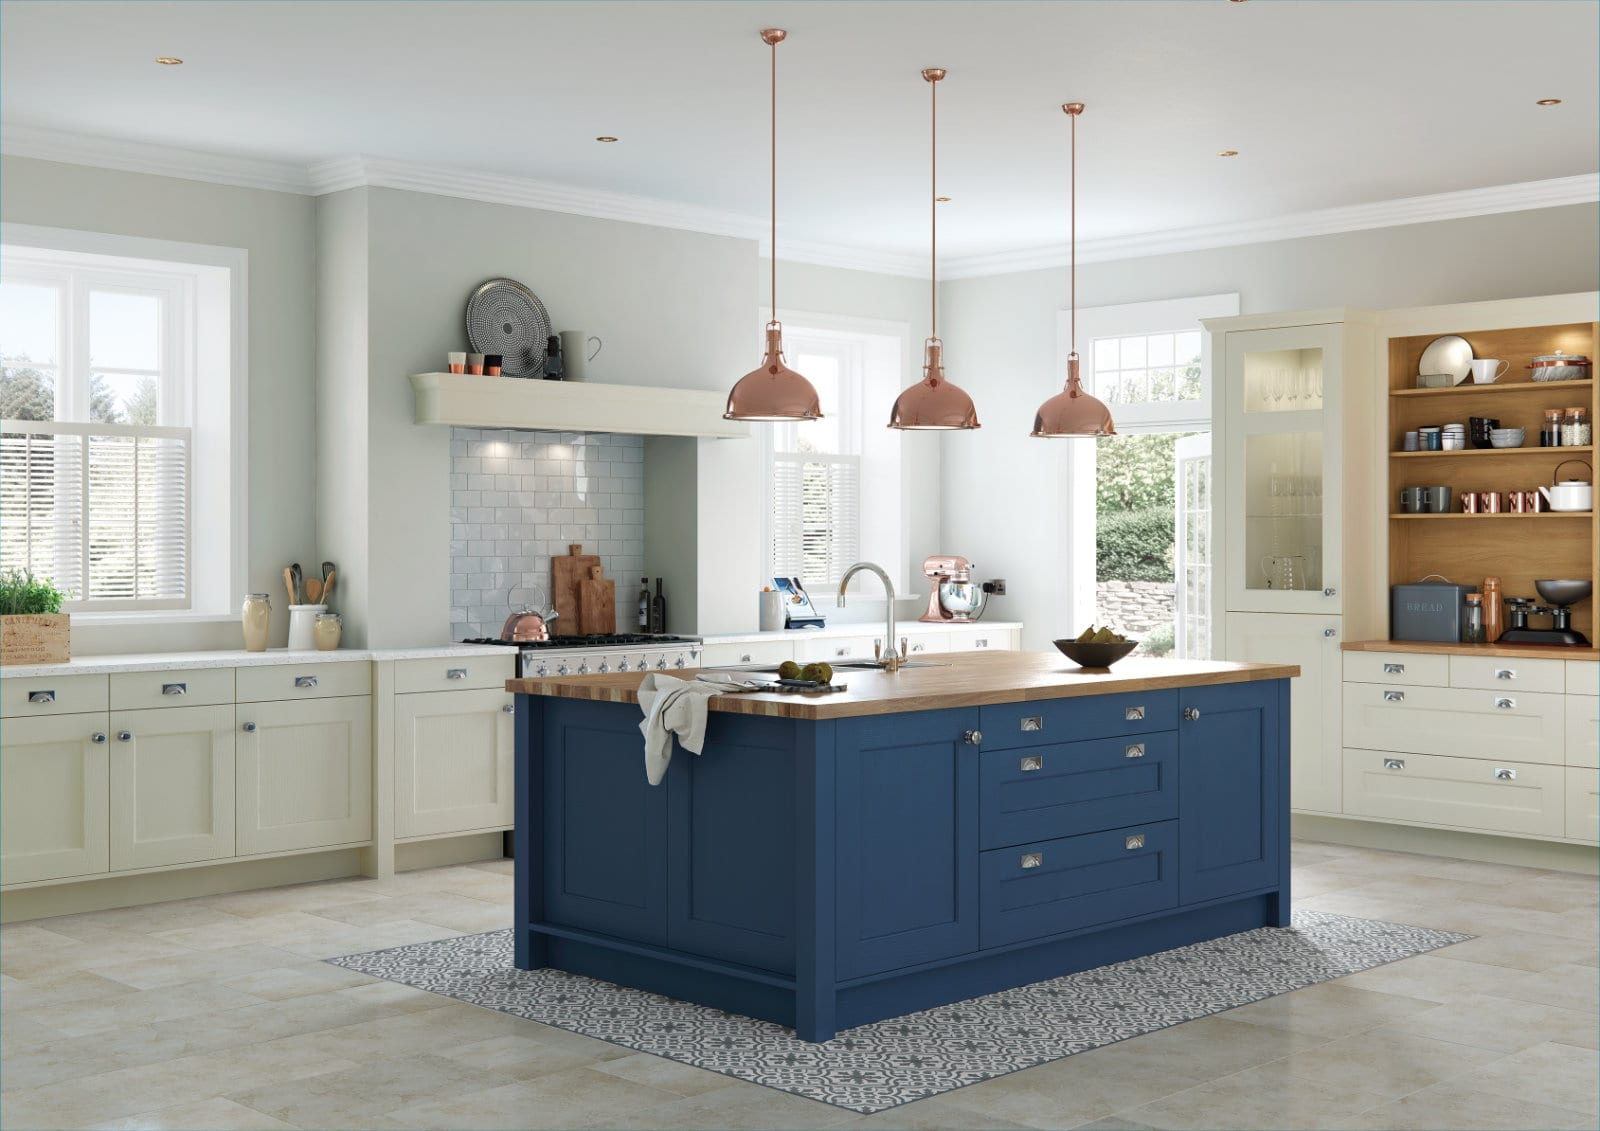 Alku Open Plan Traditional Shaker Kitchen With Island 3 | Unique Bedrooms Direct | Dunstable